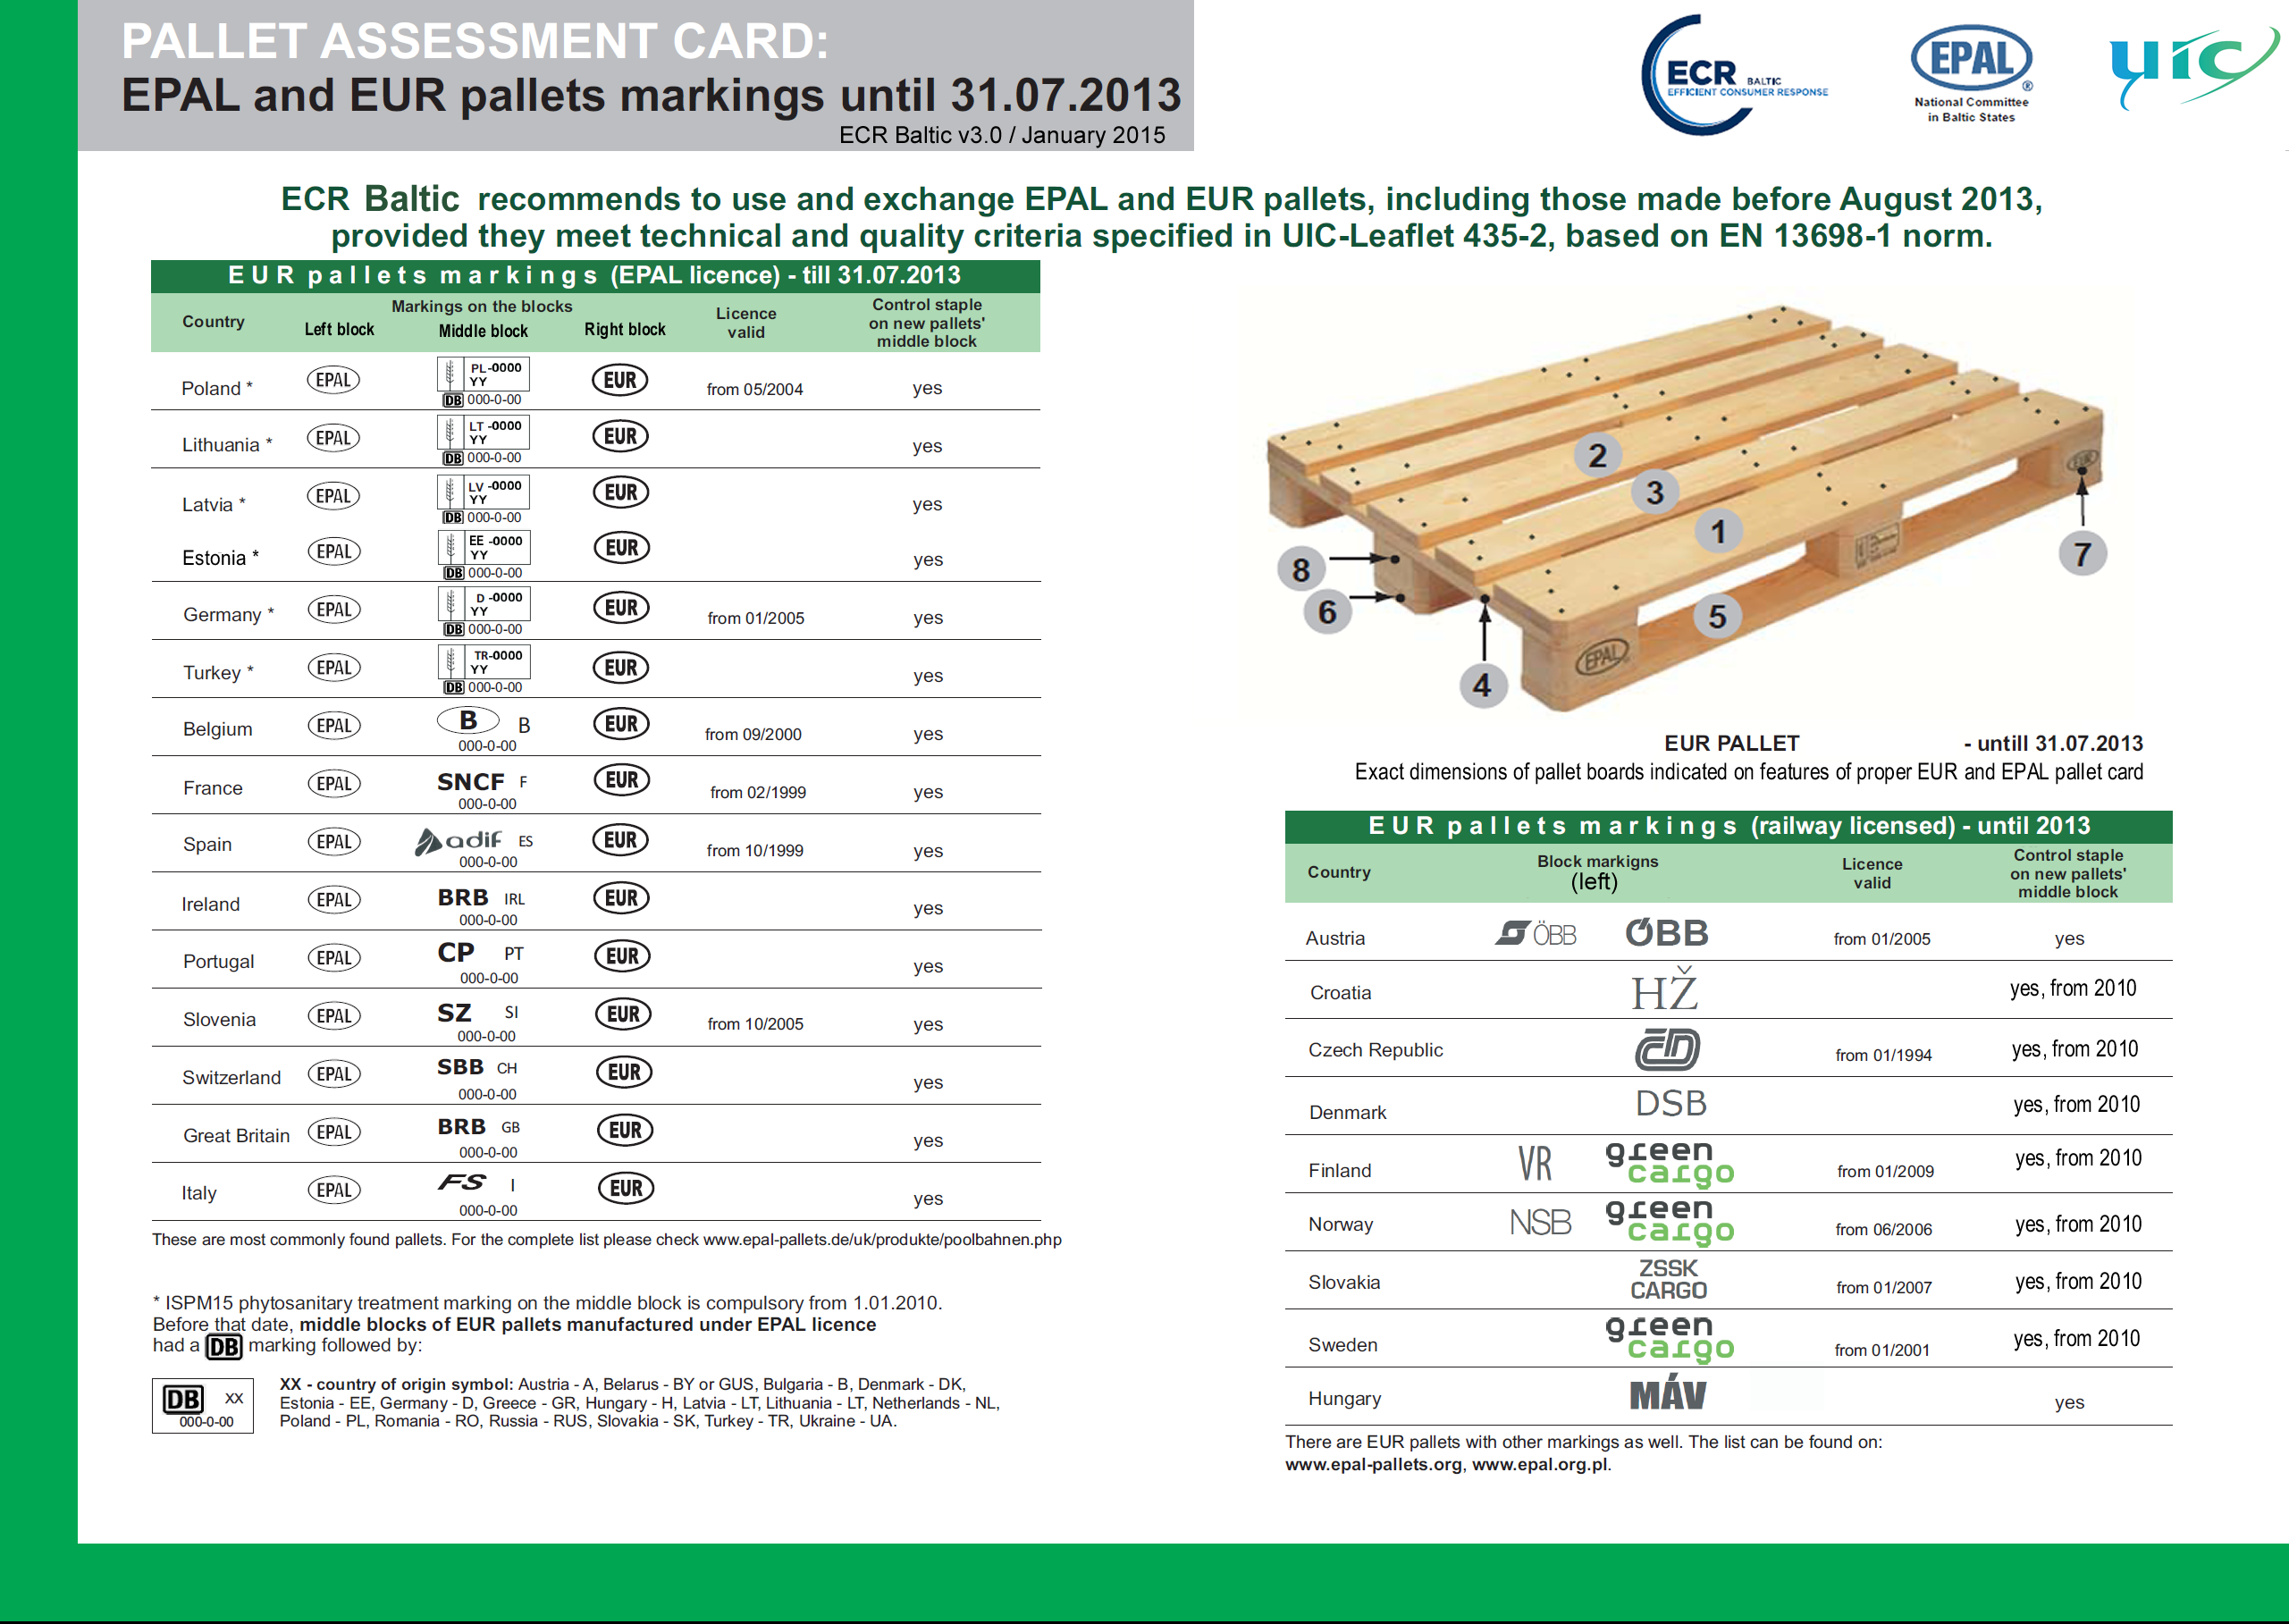 Ecr Baltic EUR Pallets Assessment Cards